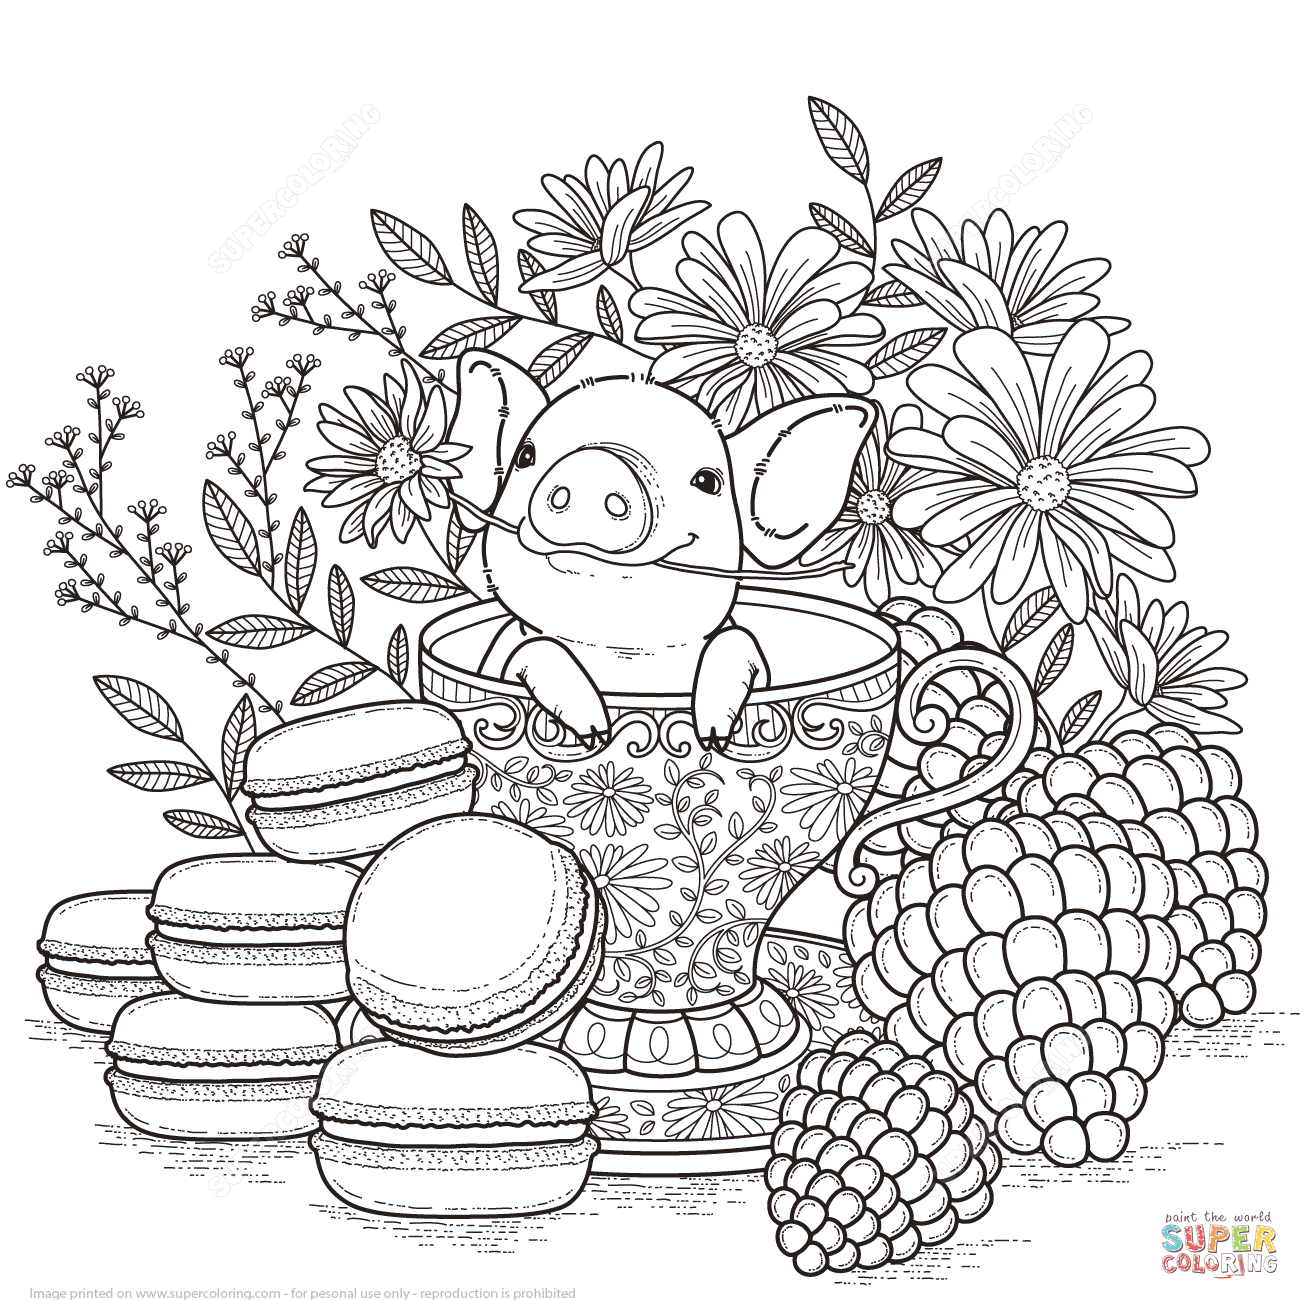 Adorable Little Pig Coloring Page